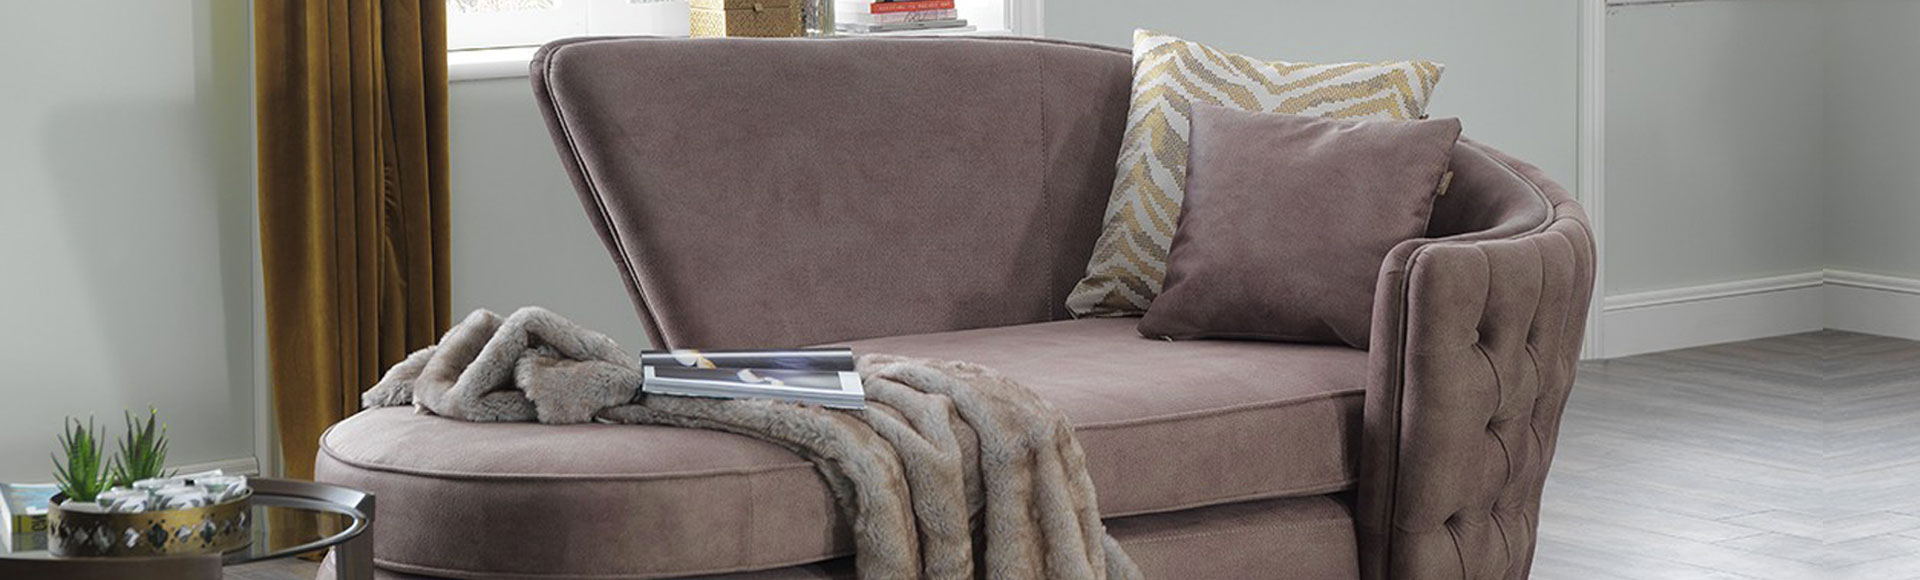 Leather Sofa Bed at IDUS Furniture Store